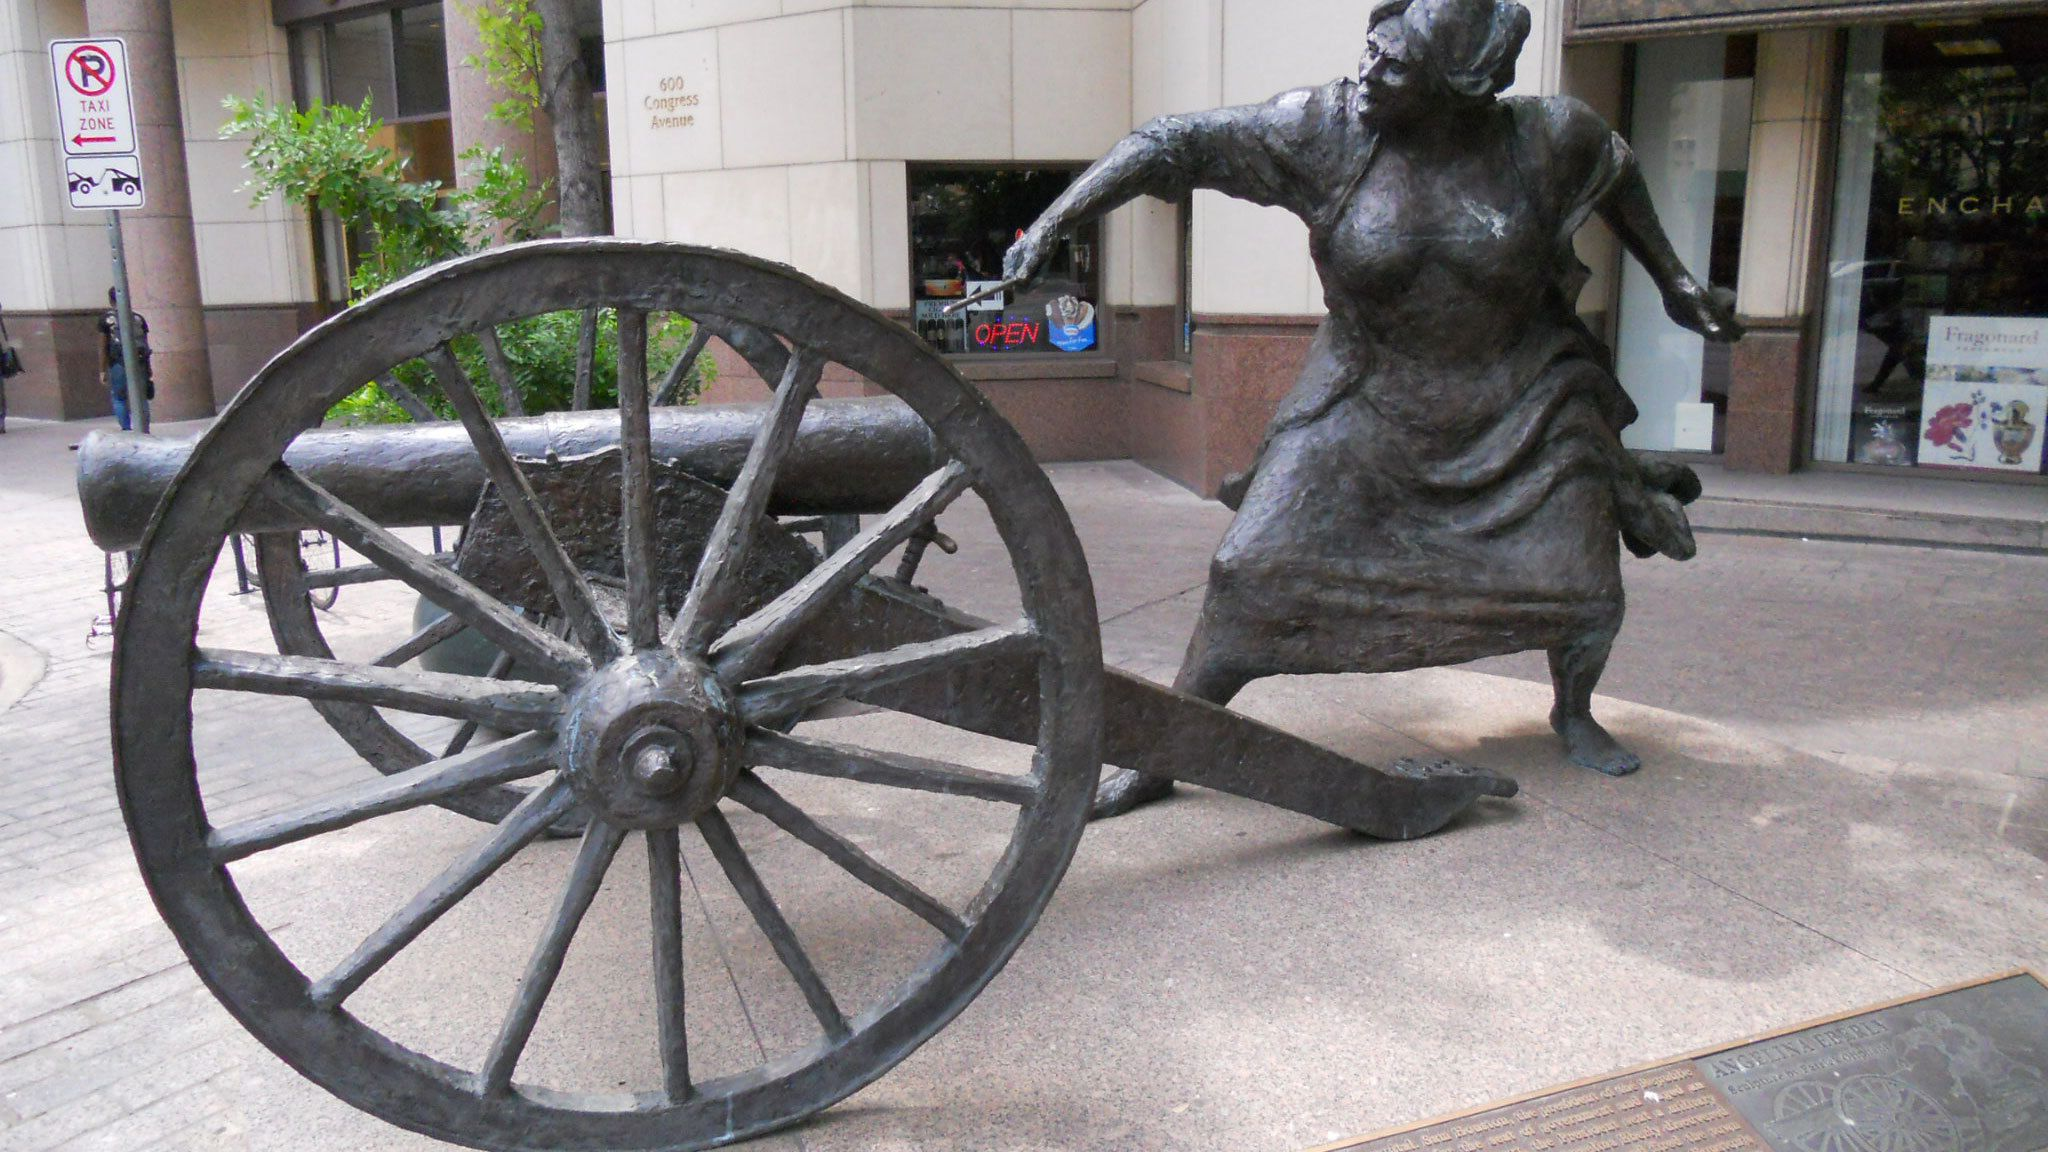 Statue of Angelina Eberly, credited for saving Austin, Texas in 1842